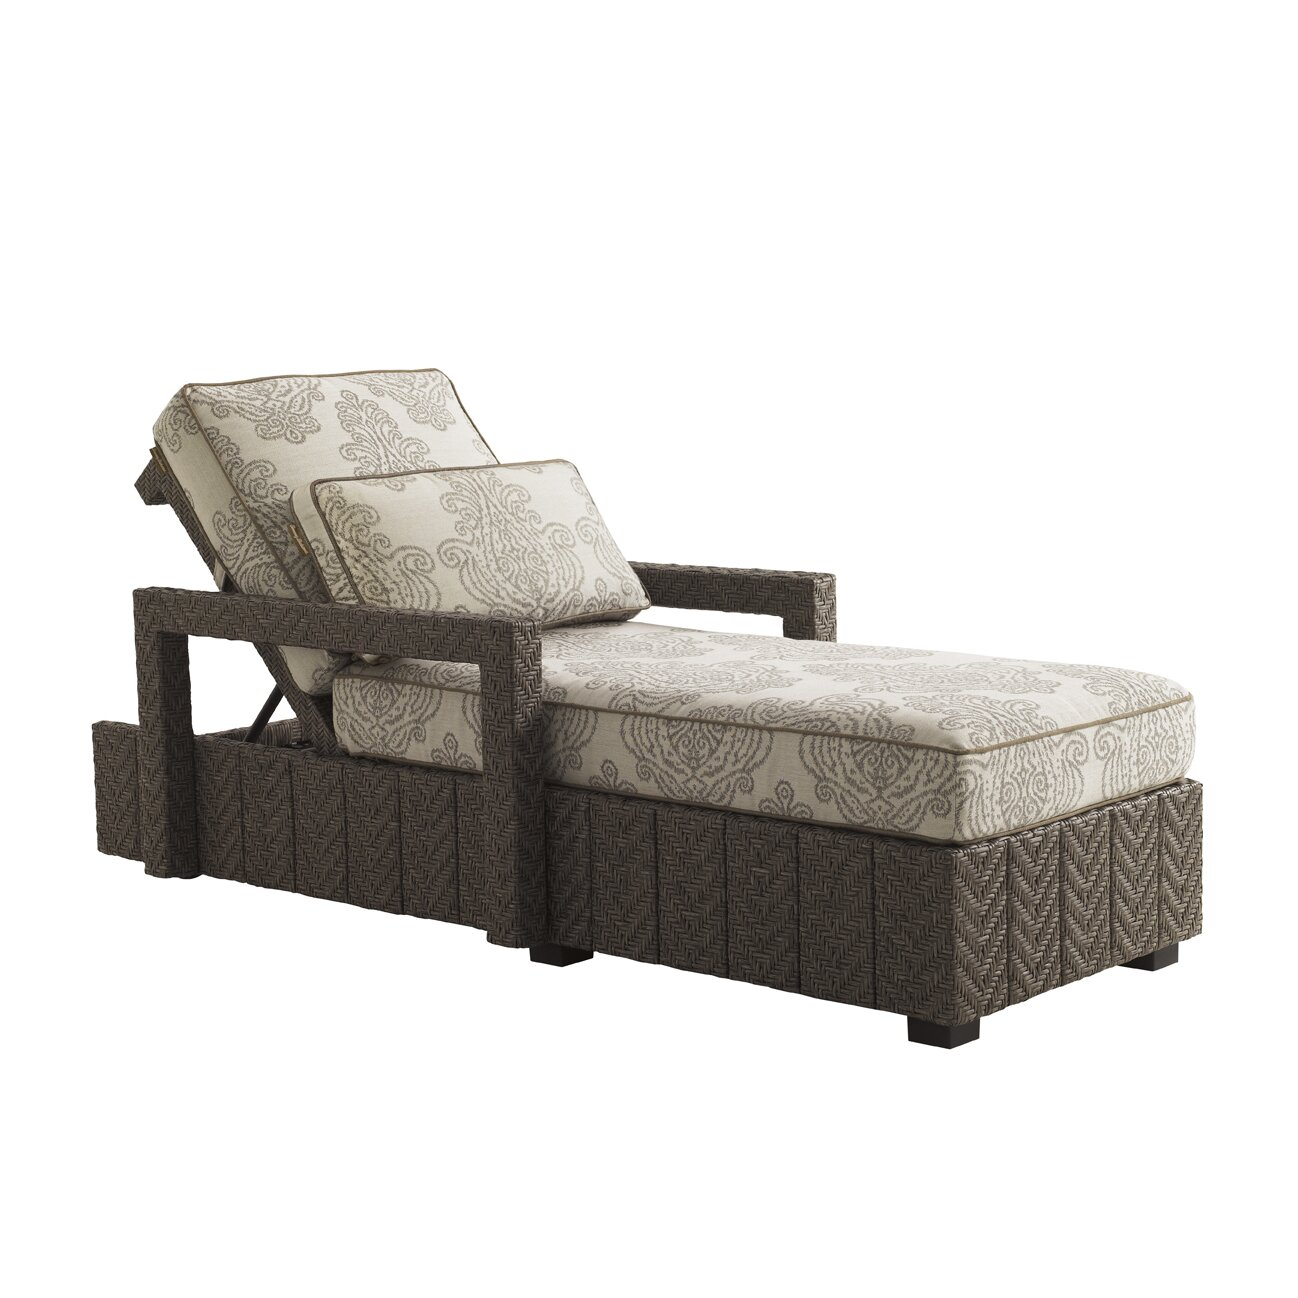 Tommy bahama outdoor blue olive chaise lounge with cushion for Blue chaise lounge cushions